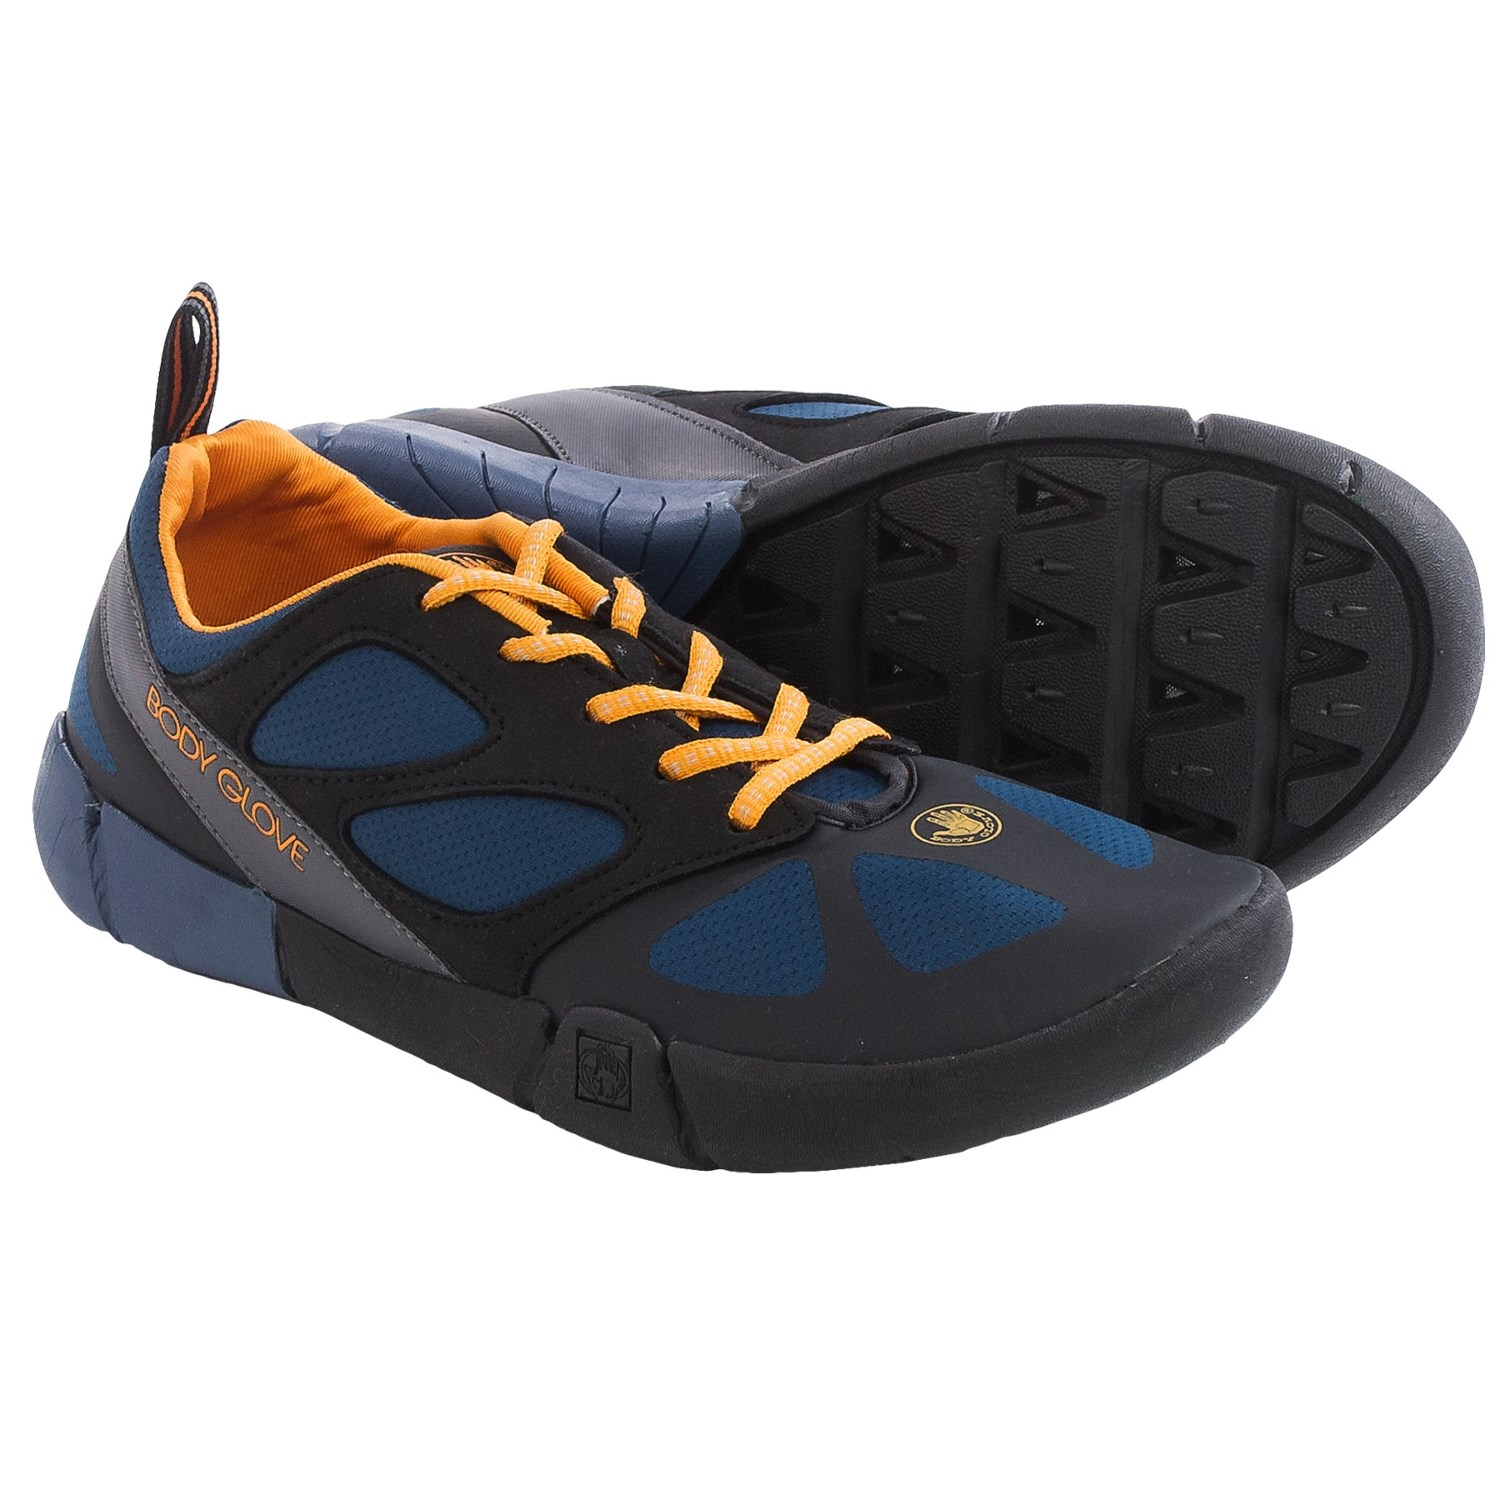 Body Glove Swoop Water Shoes (For Men) - Save 30%